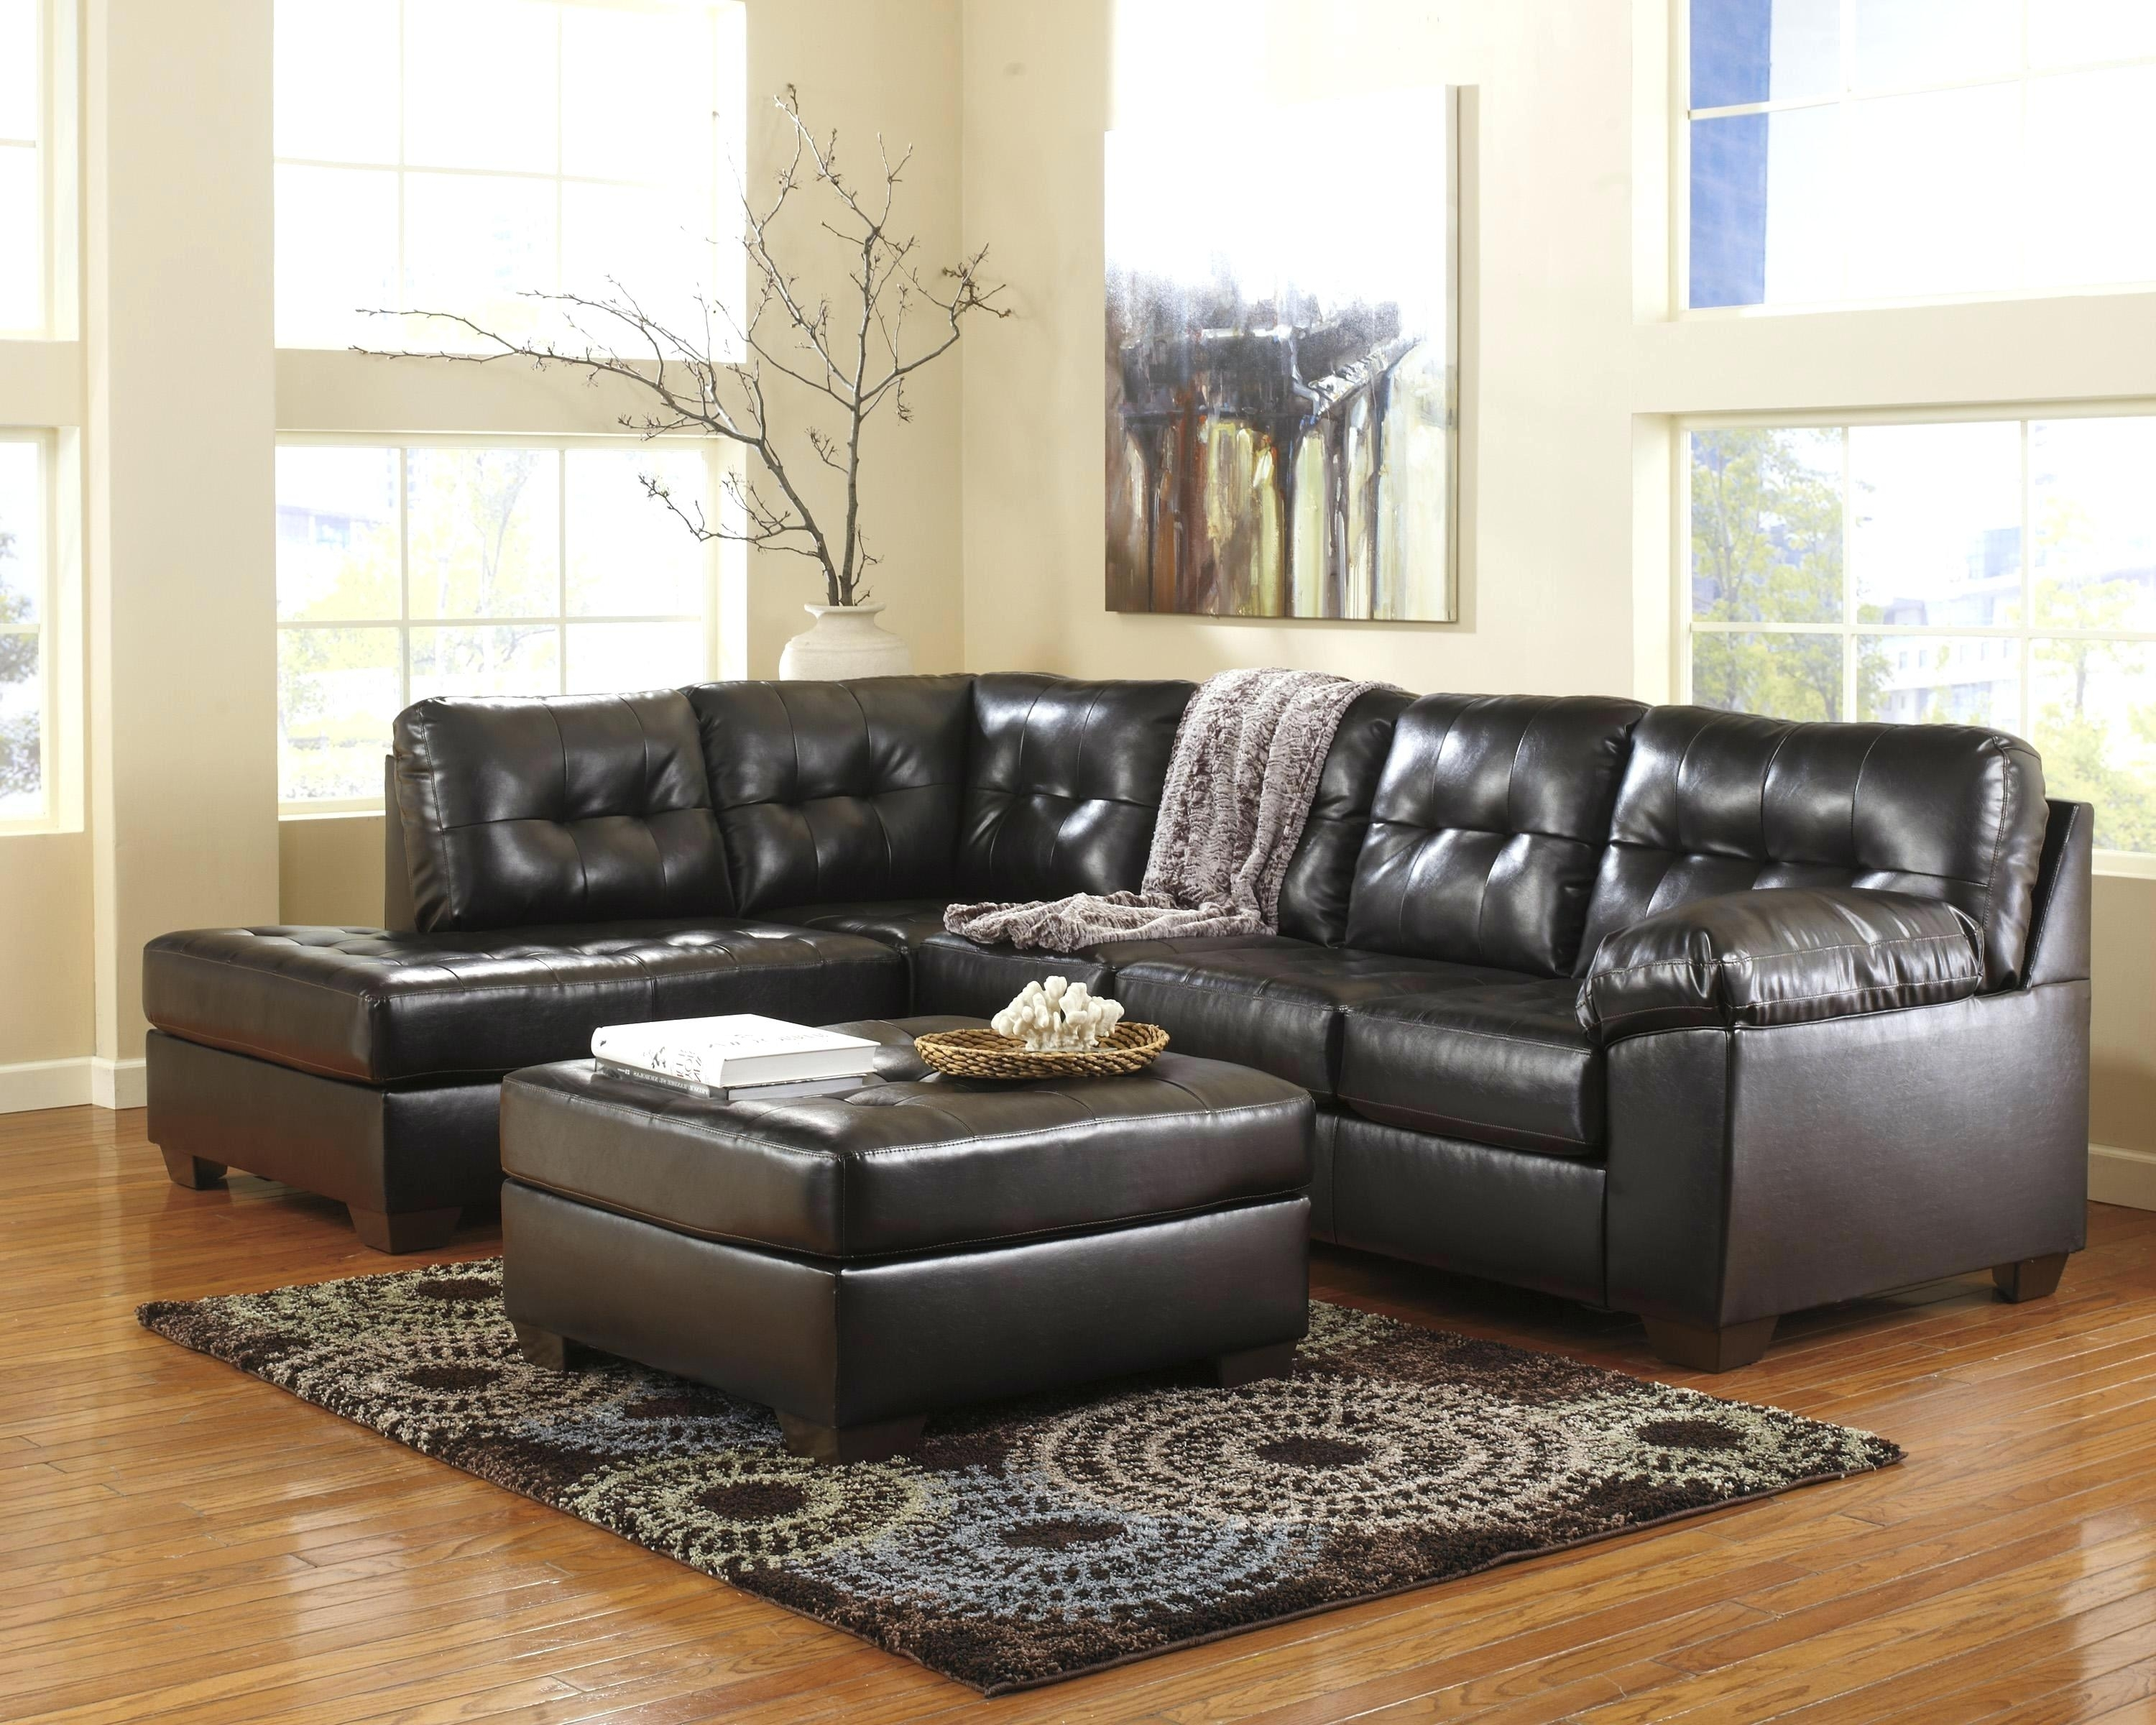 Ashley Furniture Wilmington Nc Market St Signature Design With Regard To Wilmington Nc Sectional Sofas (View 5 of 10)